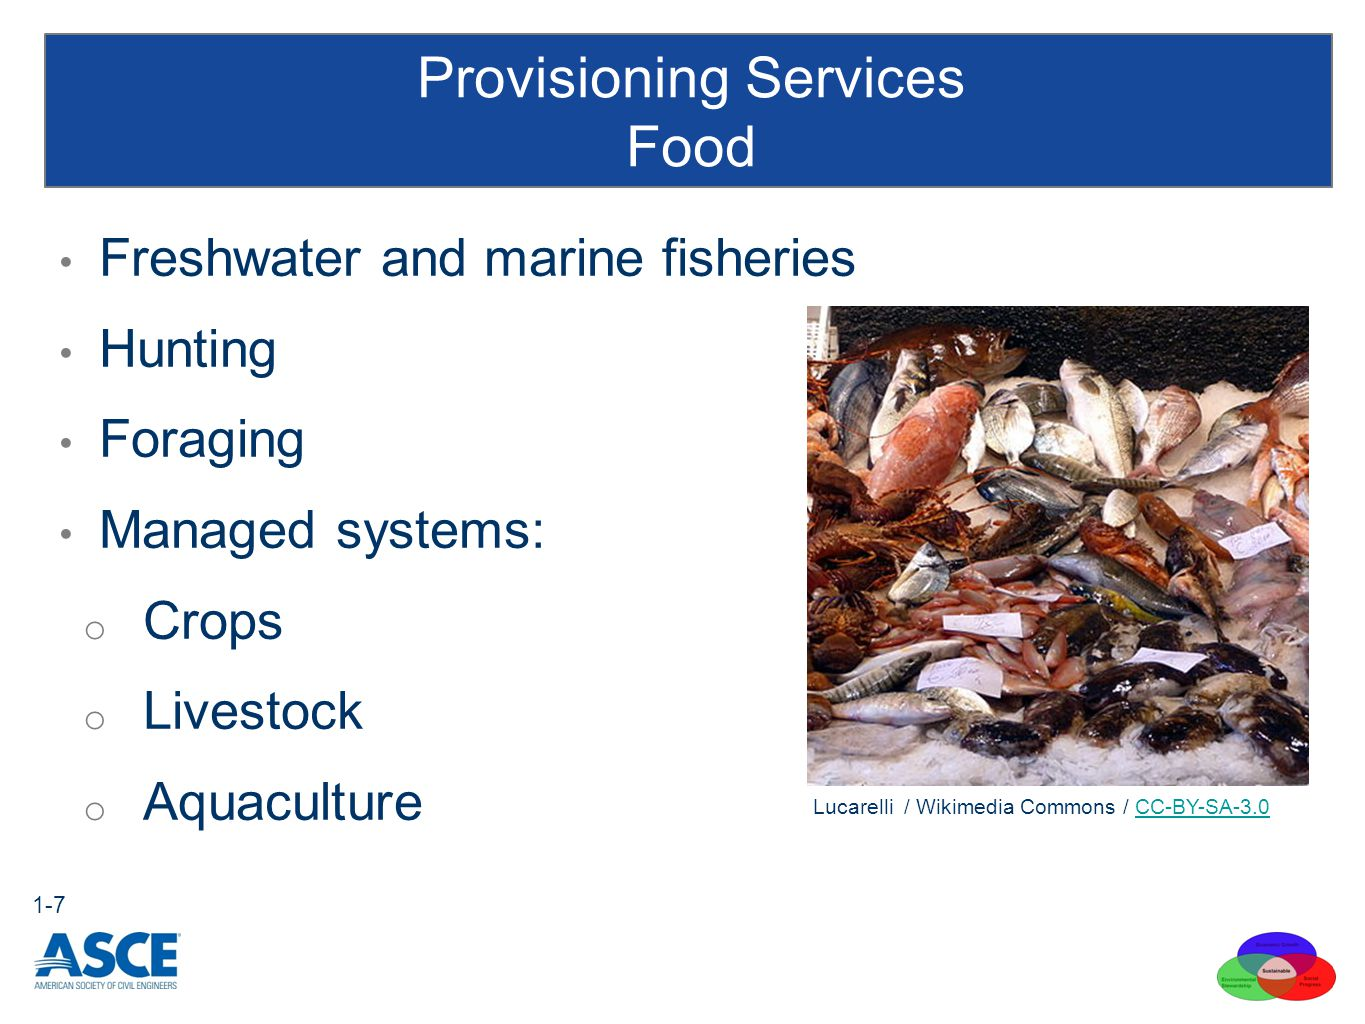 Freshwater and marine fisheries Hunting Foraging Managed systems: o Crops o Livestock o Aquaculture Provisioning Services Food 1-7 Lucarelli / Wikimedia Commons / CC-BY-SA-3.0CC-BY-SA-3.0